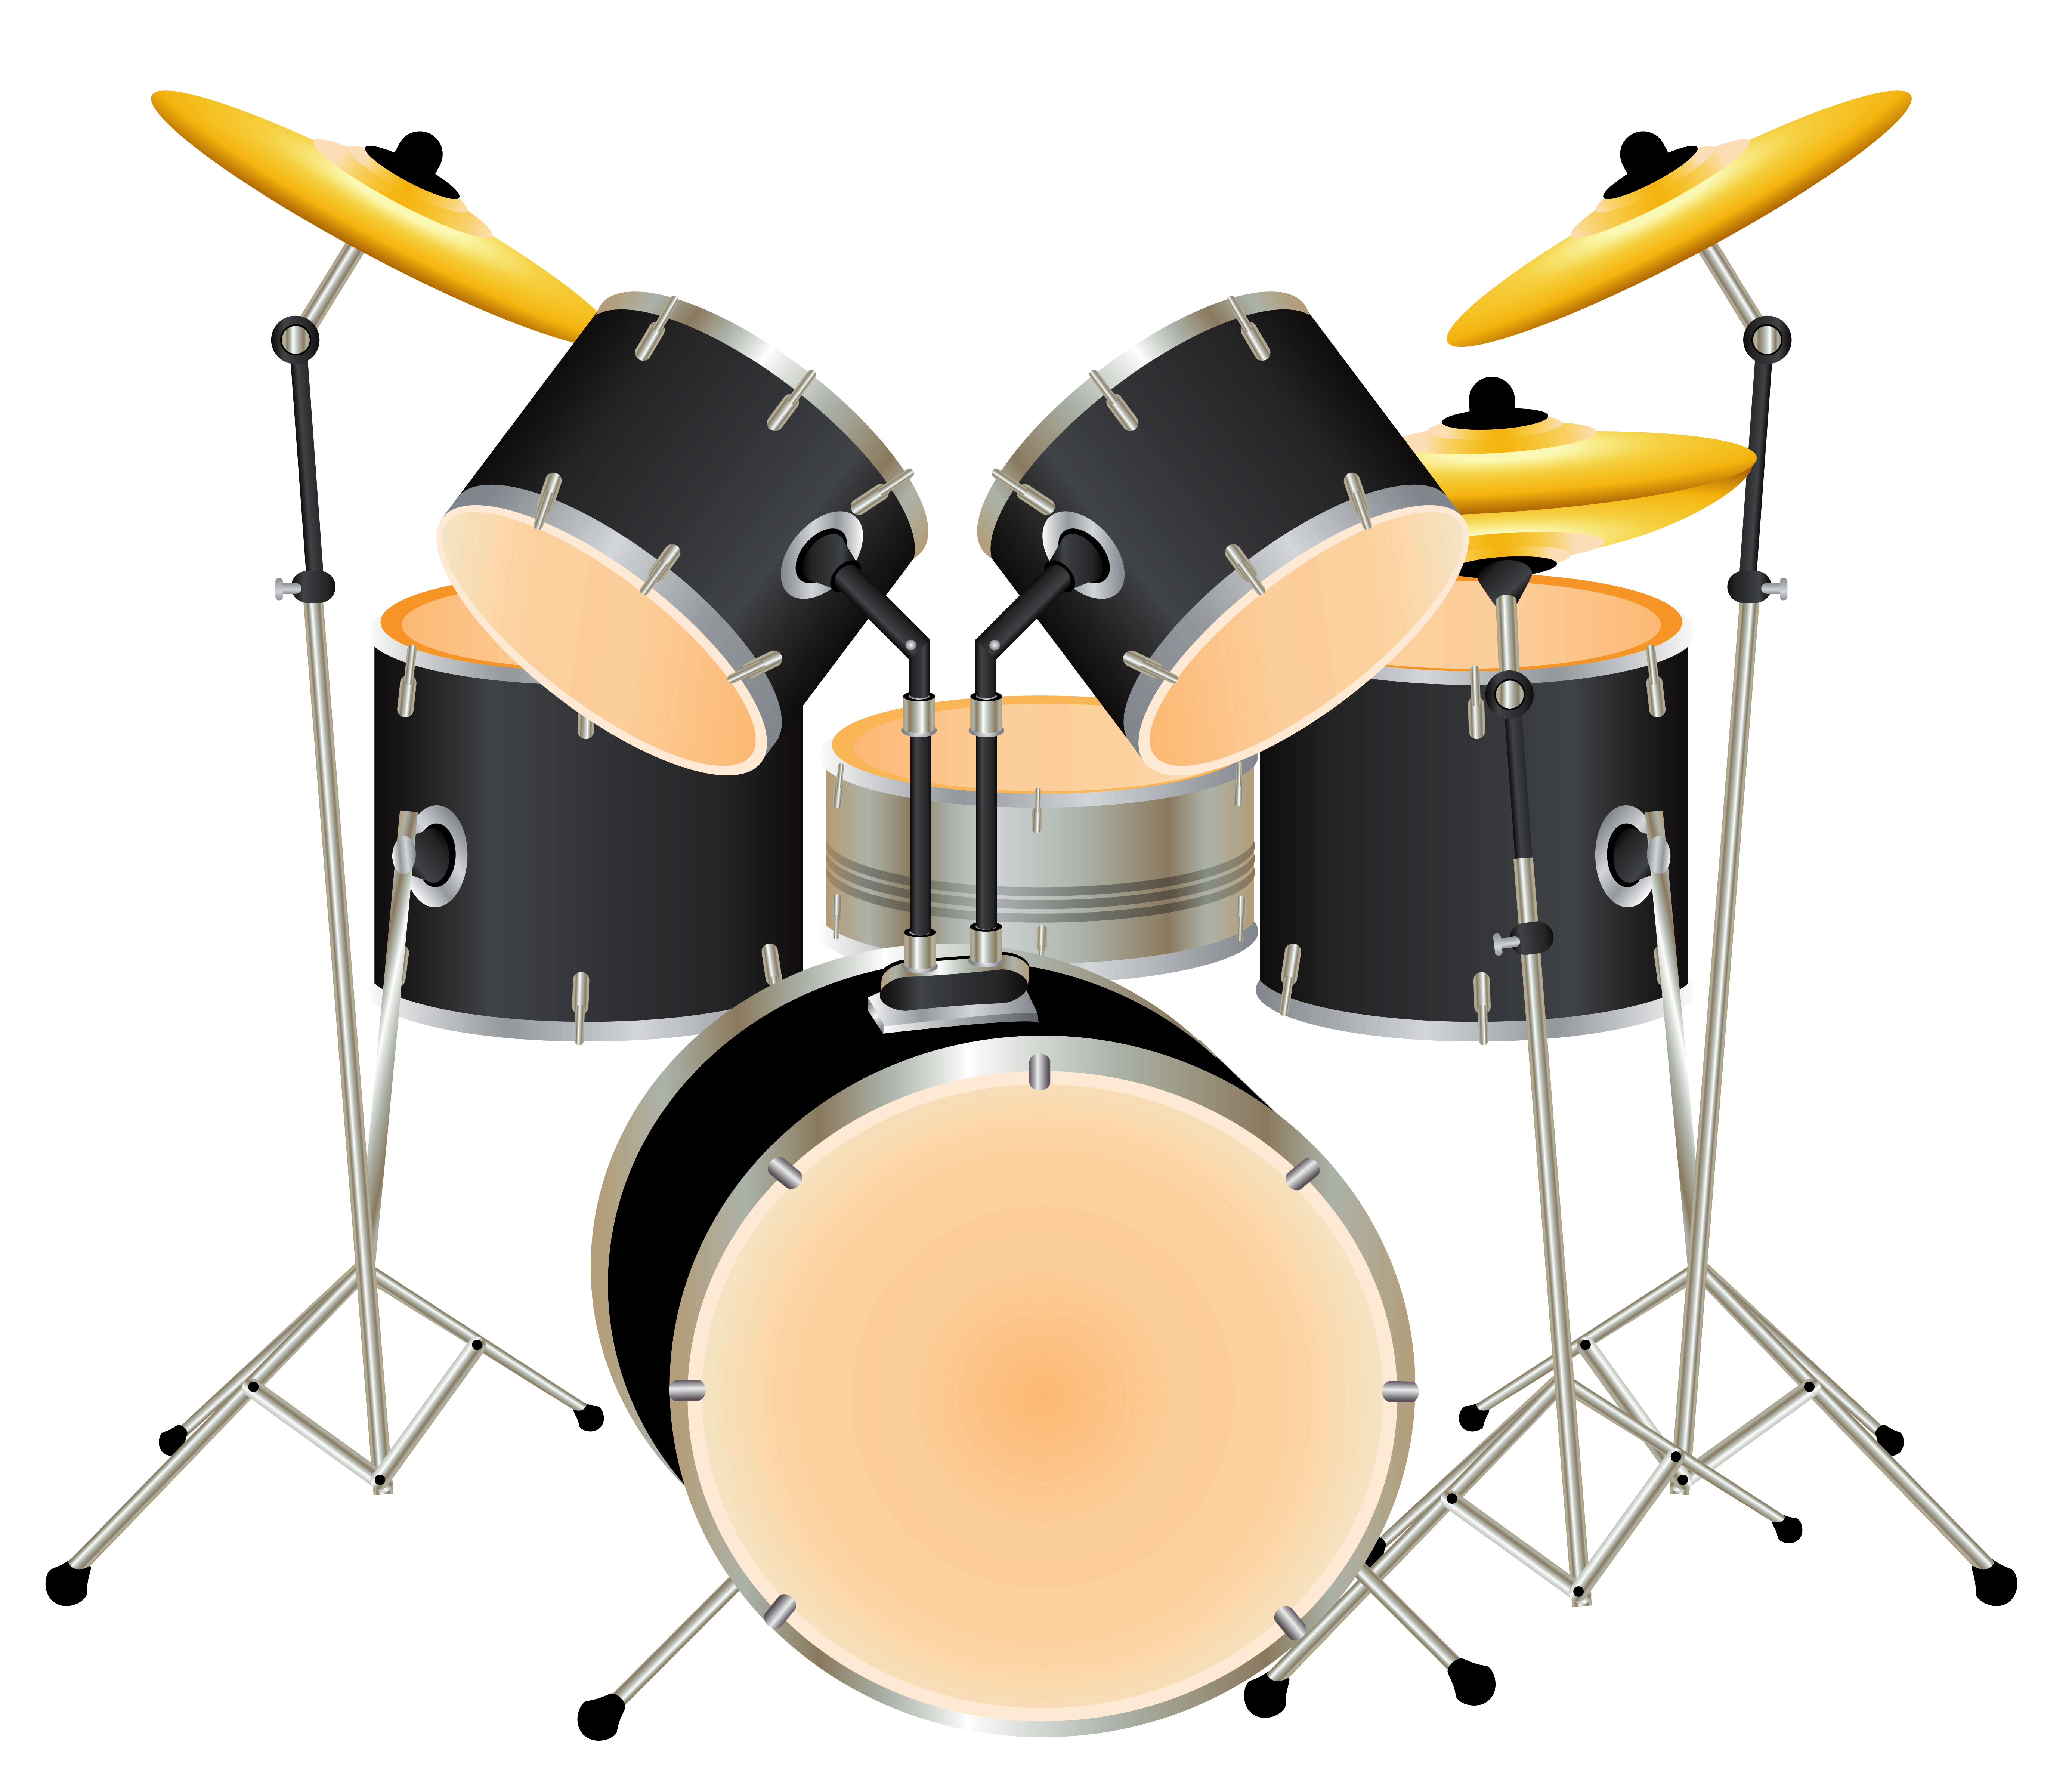 drums clipart pink